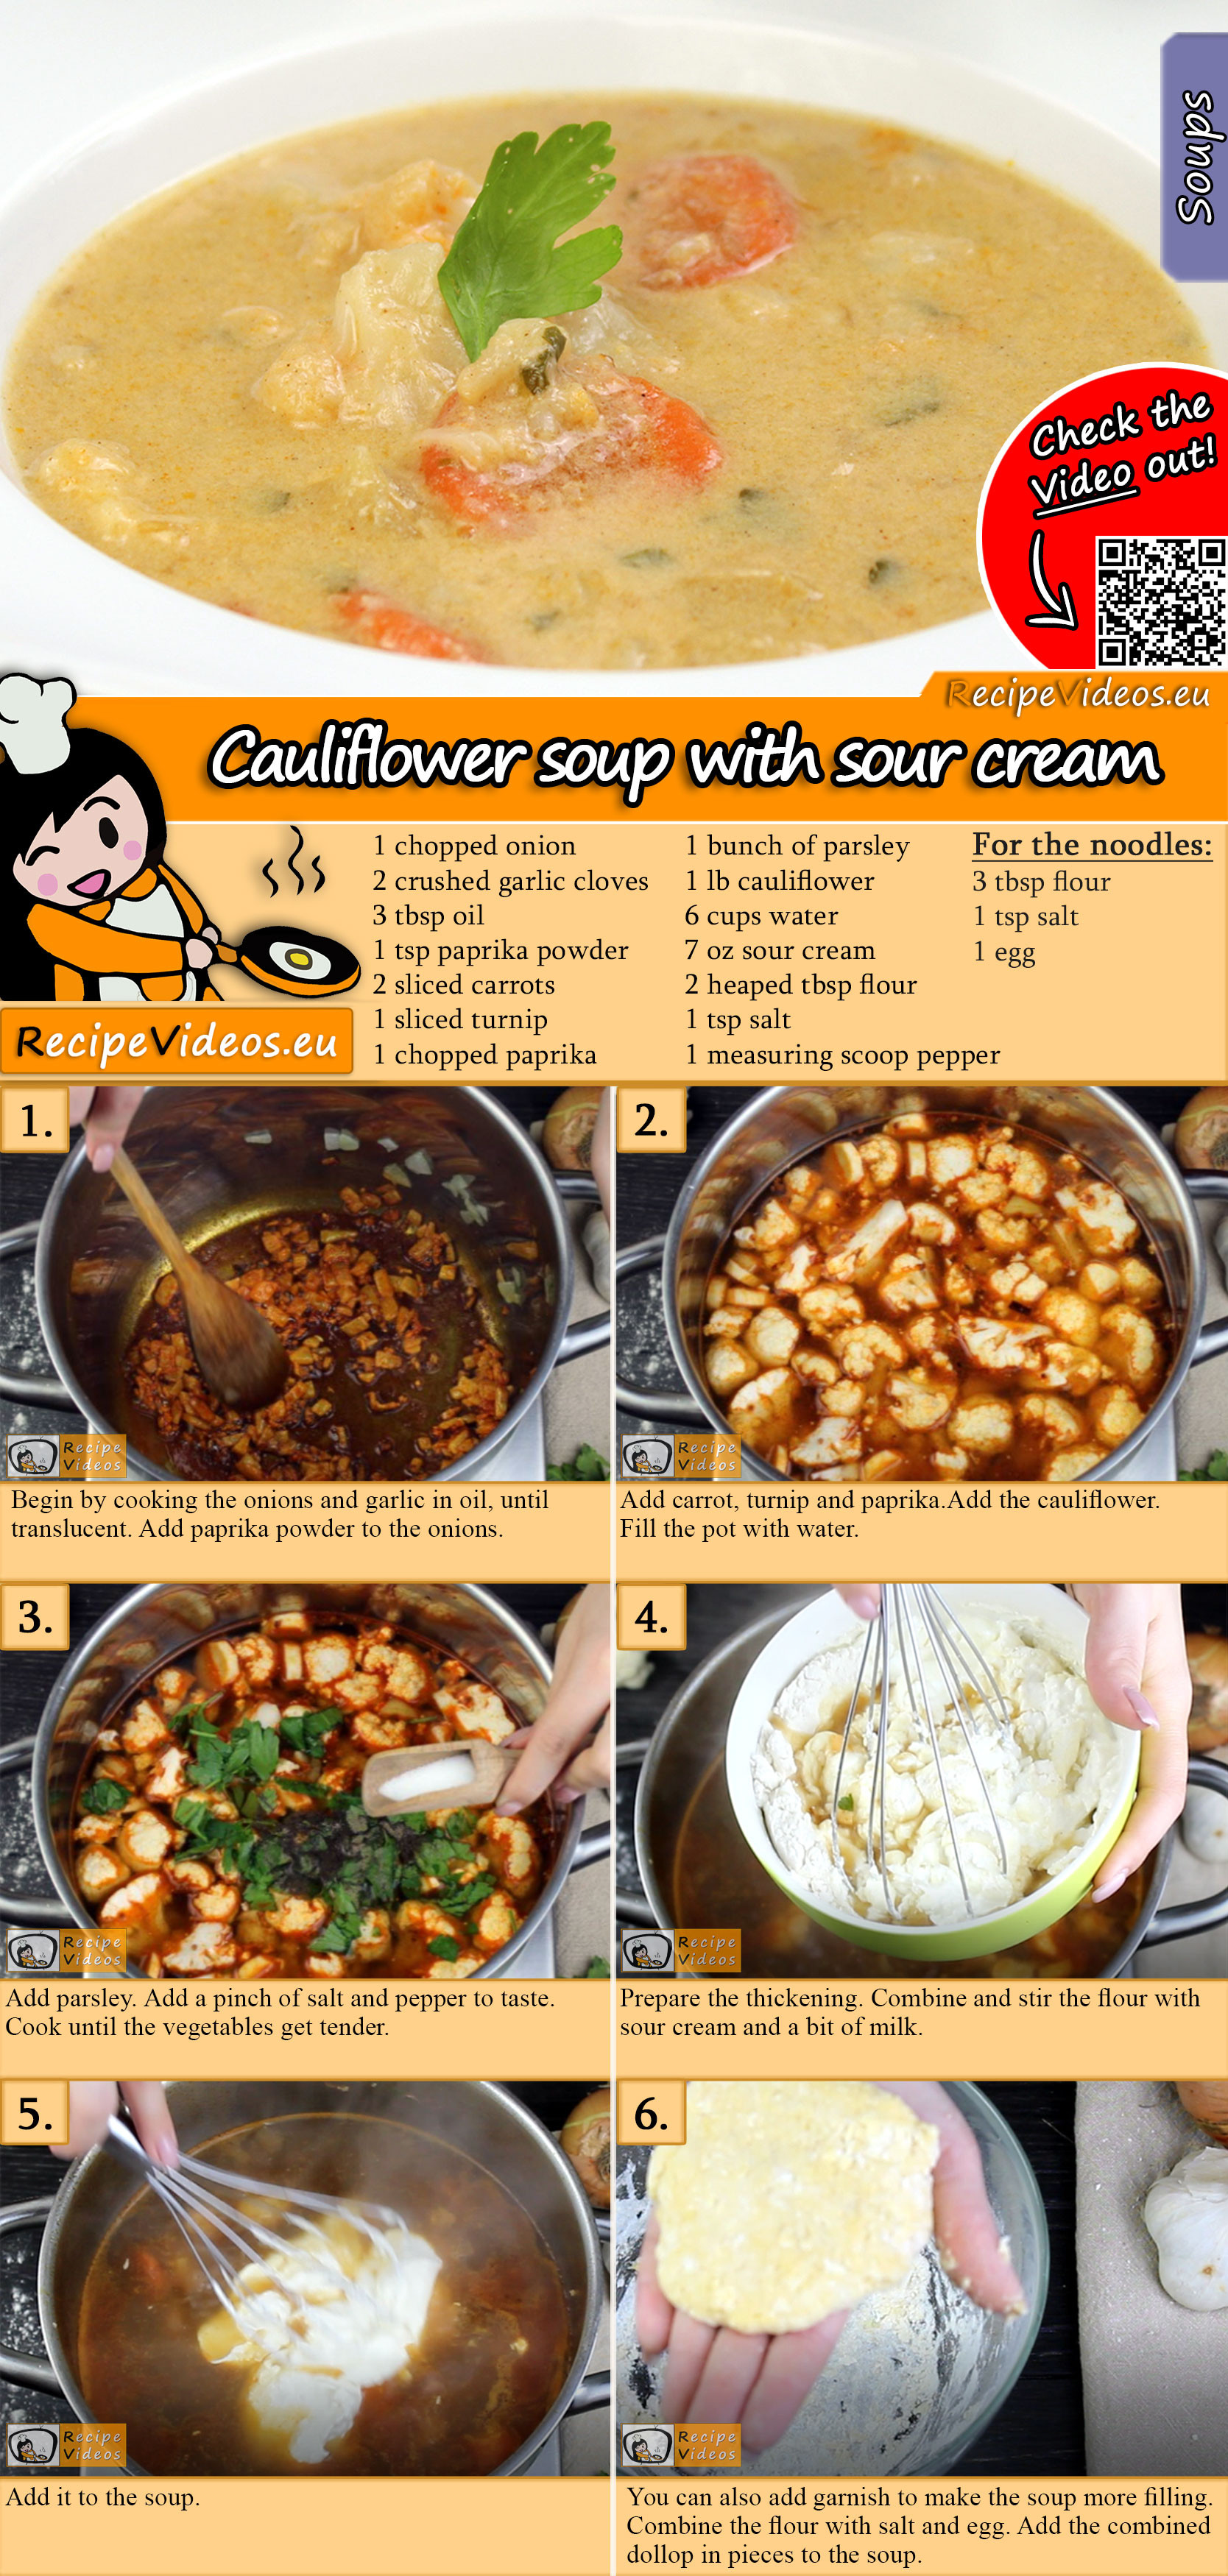 Cauliflower soup with sour cream recipe with video